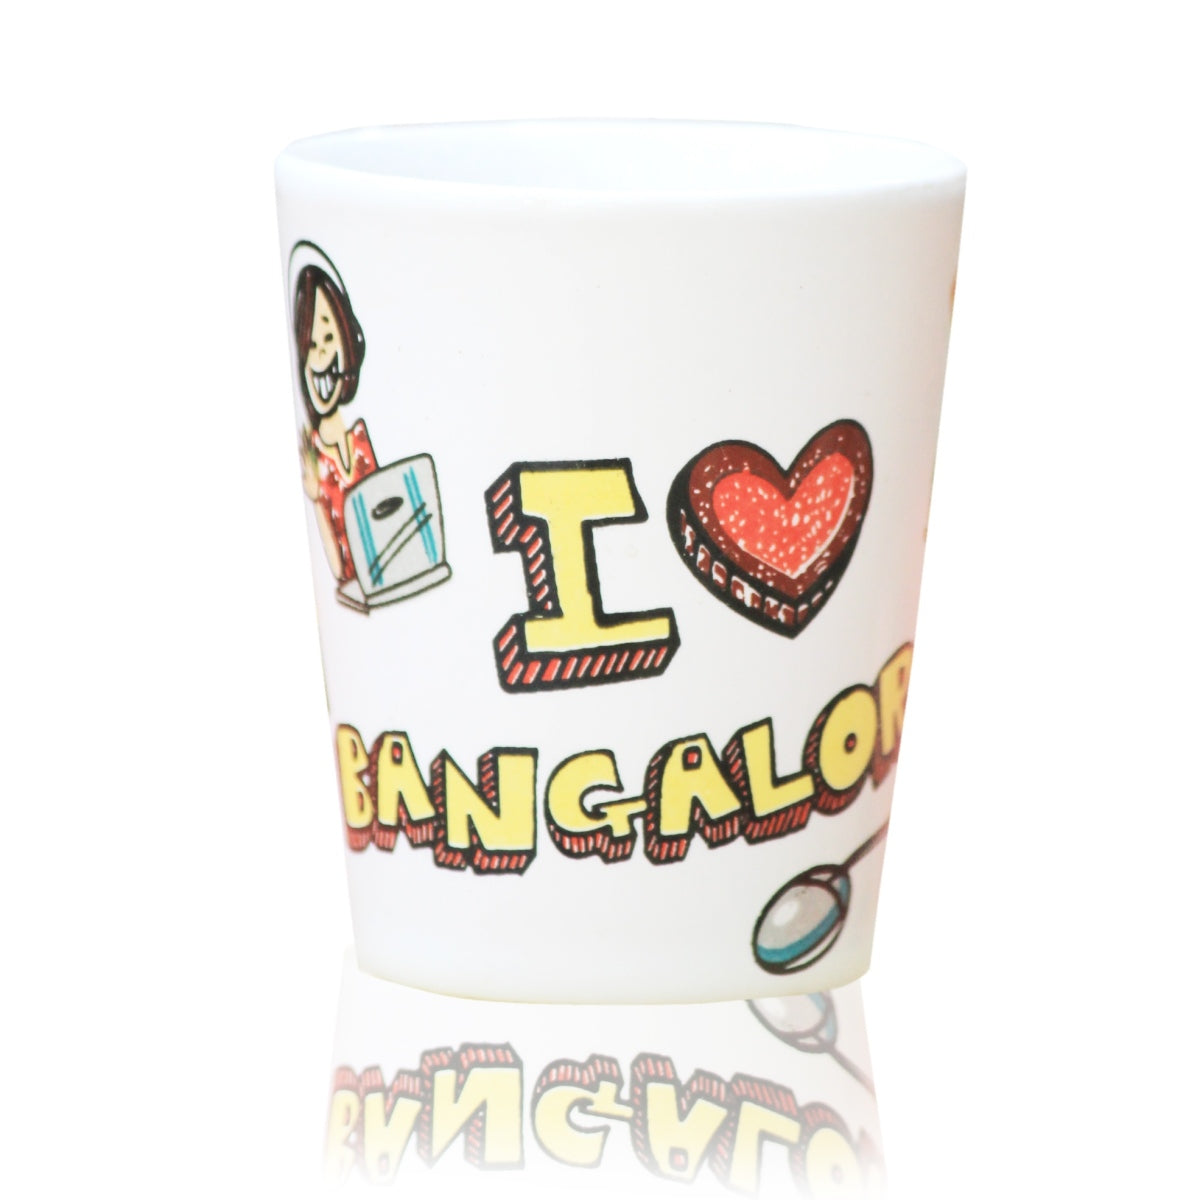 Bangalore Ceramic Shot Glass